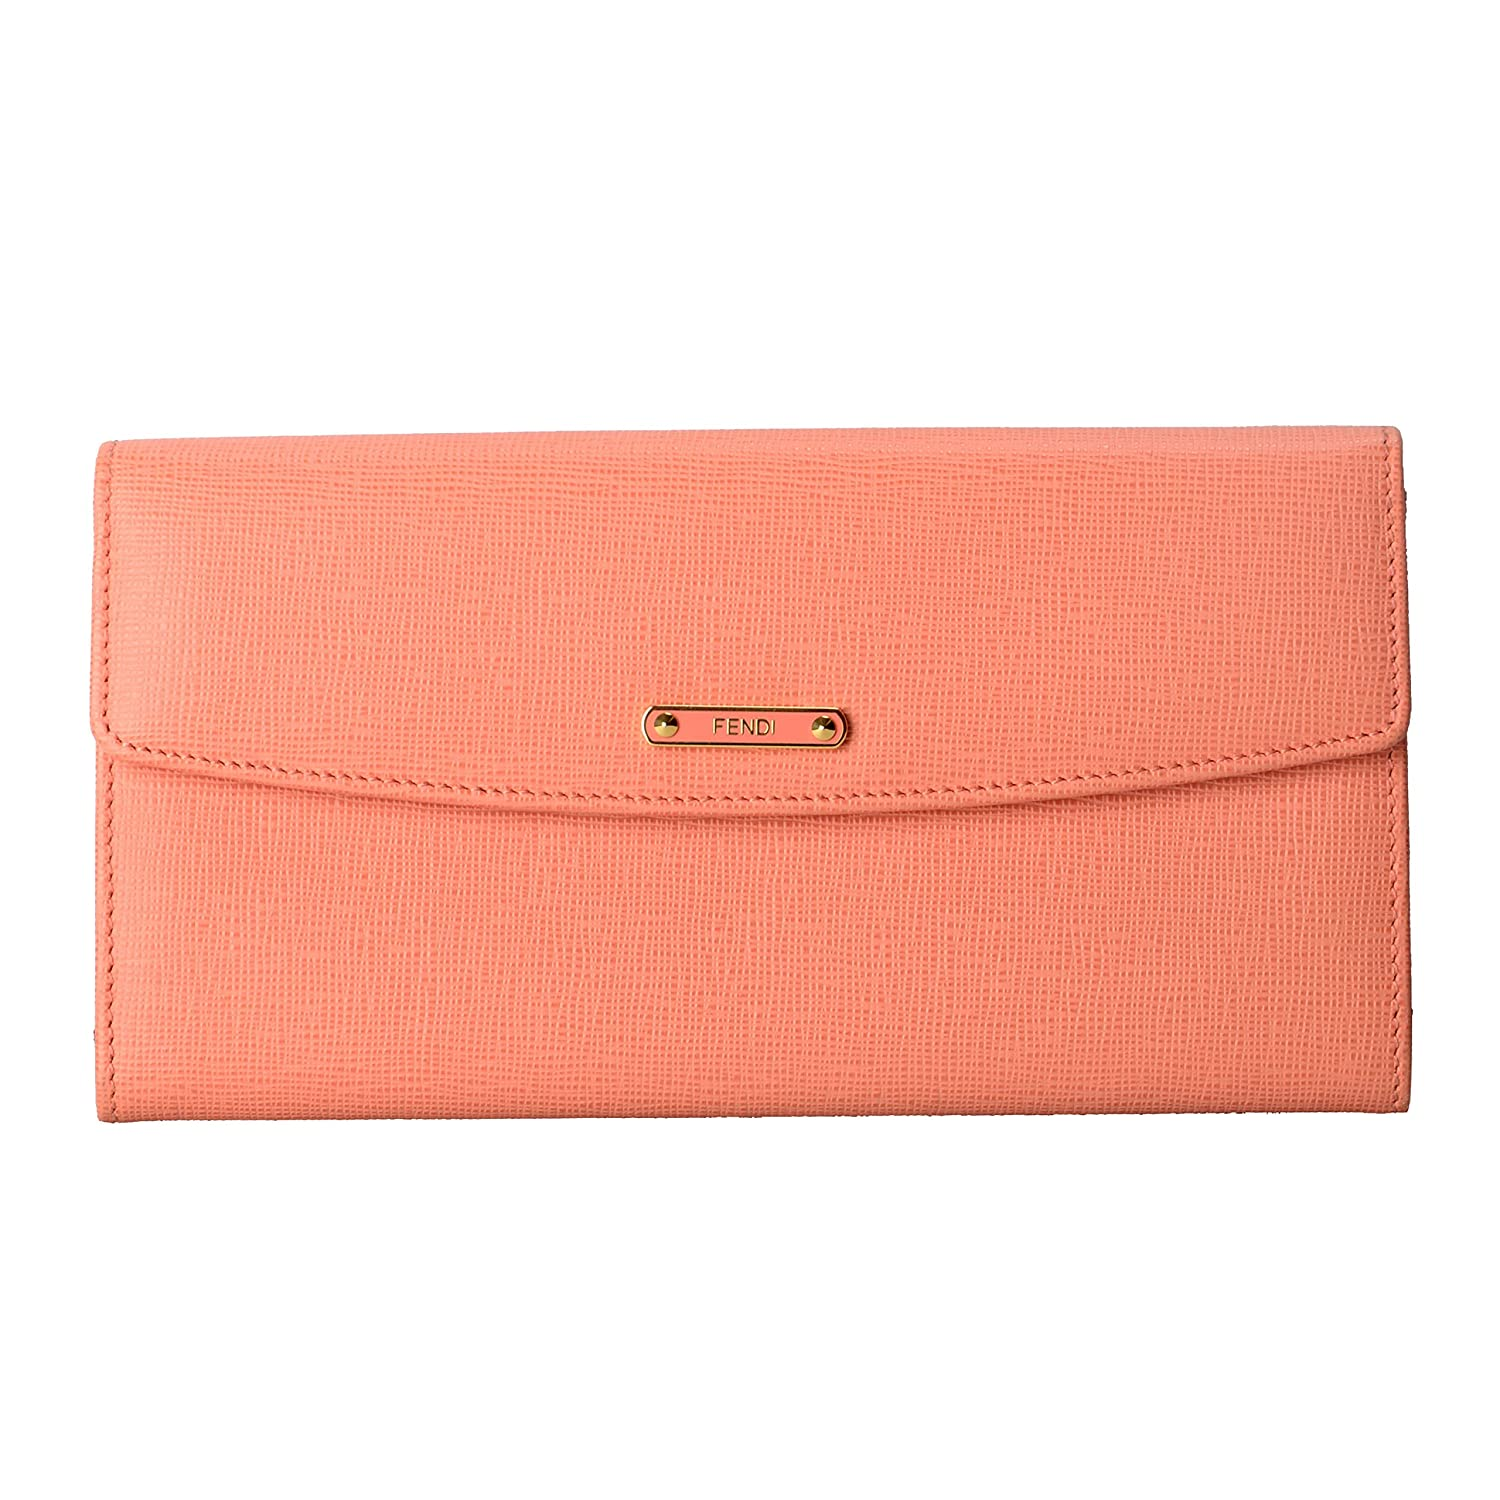 180684ef11 Fendi Women s Pink Saffiano Leather Continental Crayons Wallet at Amazon  Women s Clothing store